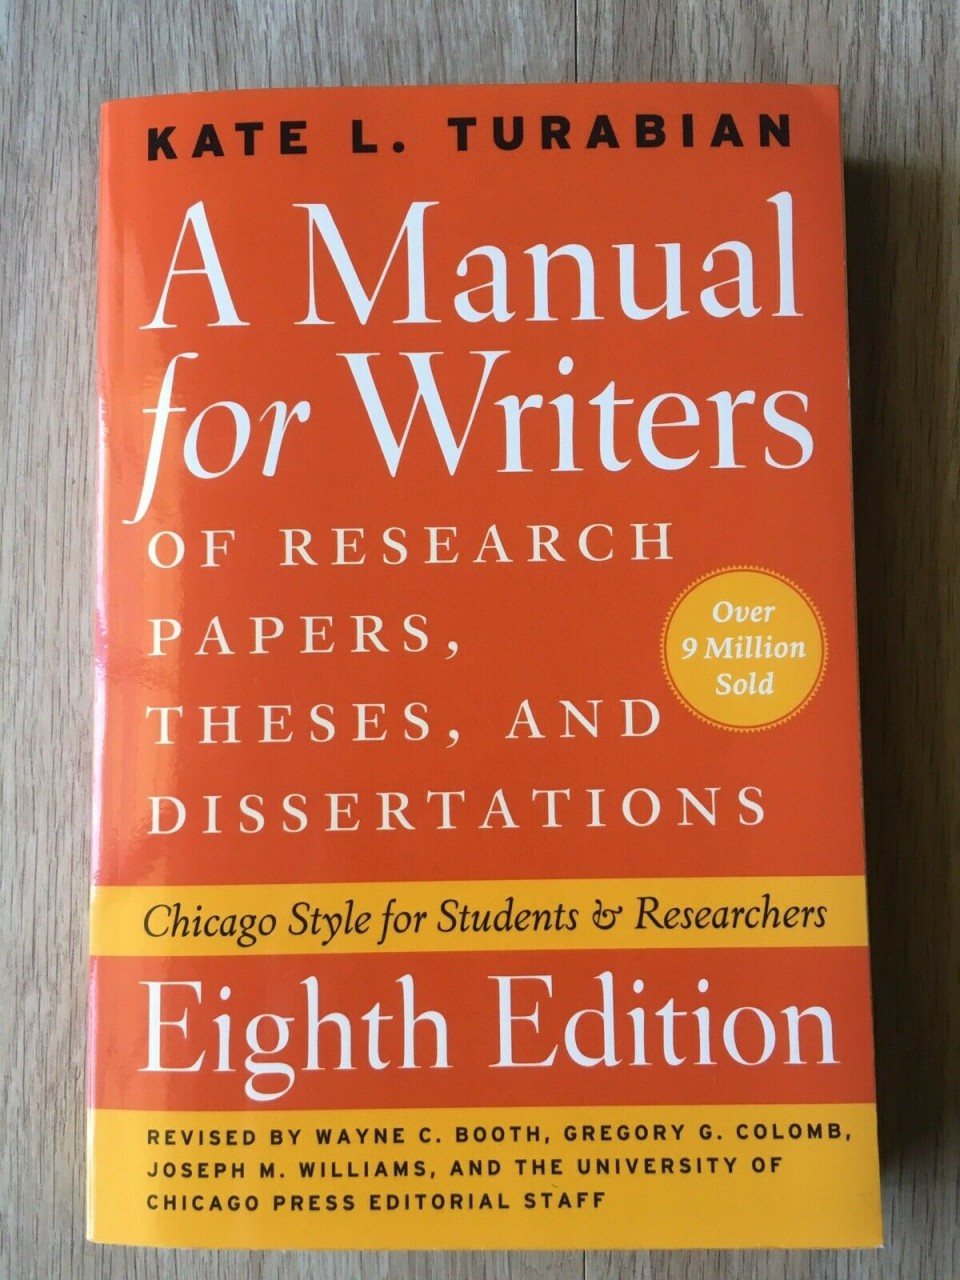 013 Manual For Writers Of Research Papers Theses And Dissertations Turabian Paper S Amazing A Pdf 960